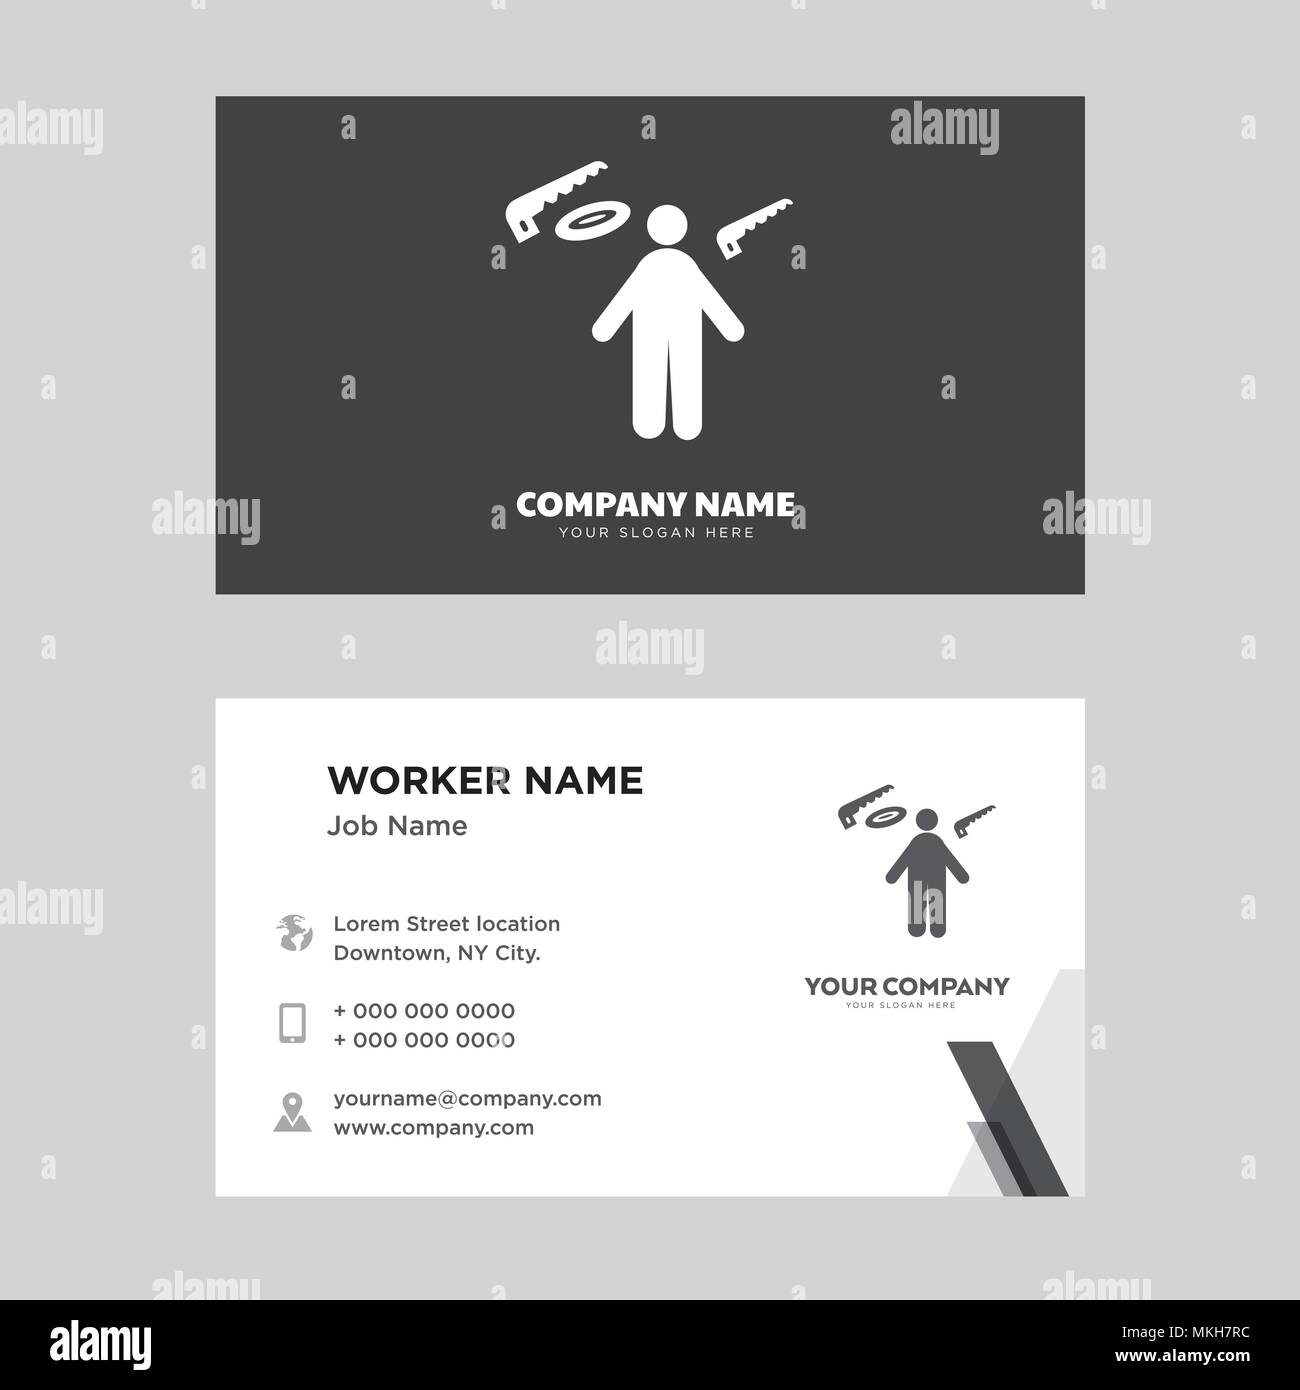 Carpenter business card design template visiting for your company carpenter business card design template visiting for your company modern horizontal identity card vector wajeb Gallery